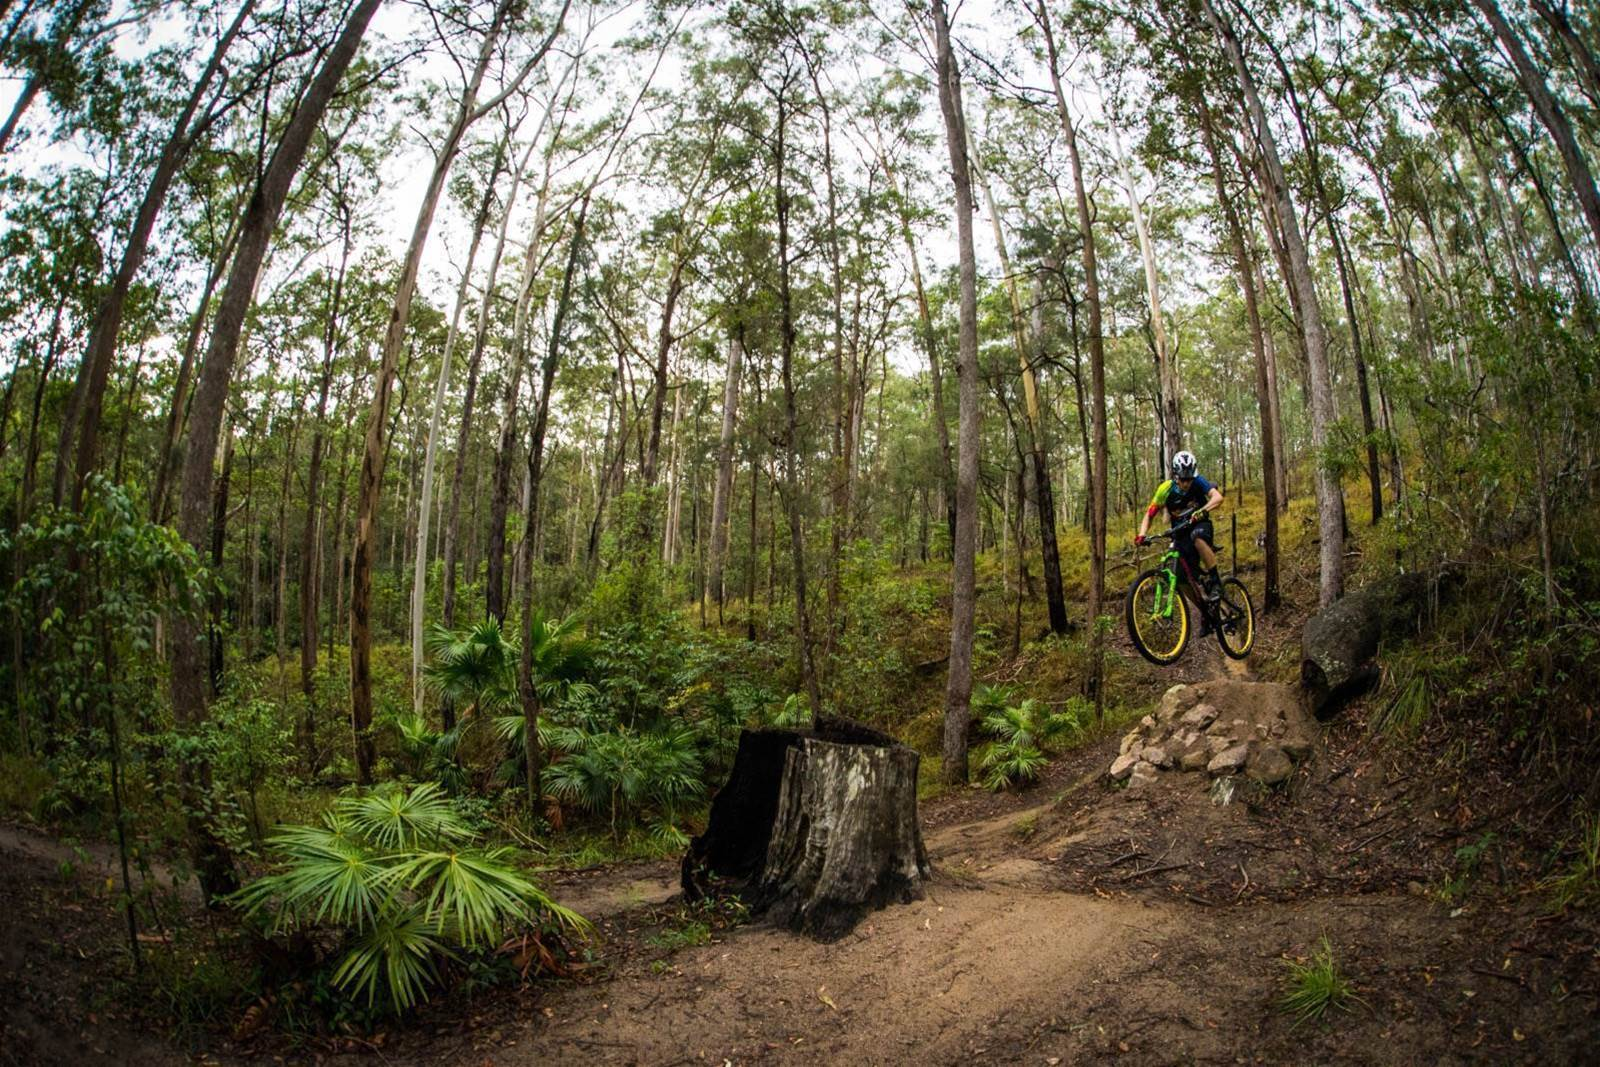 Queensland's mountain bike hot spots